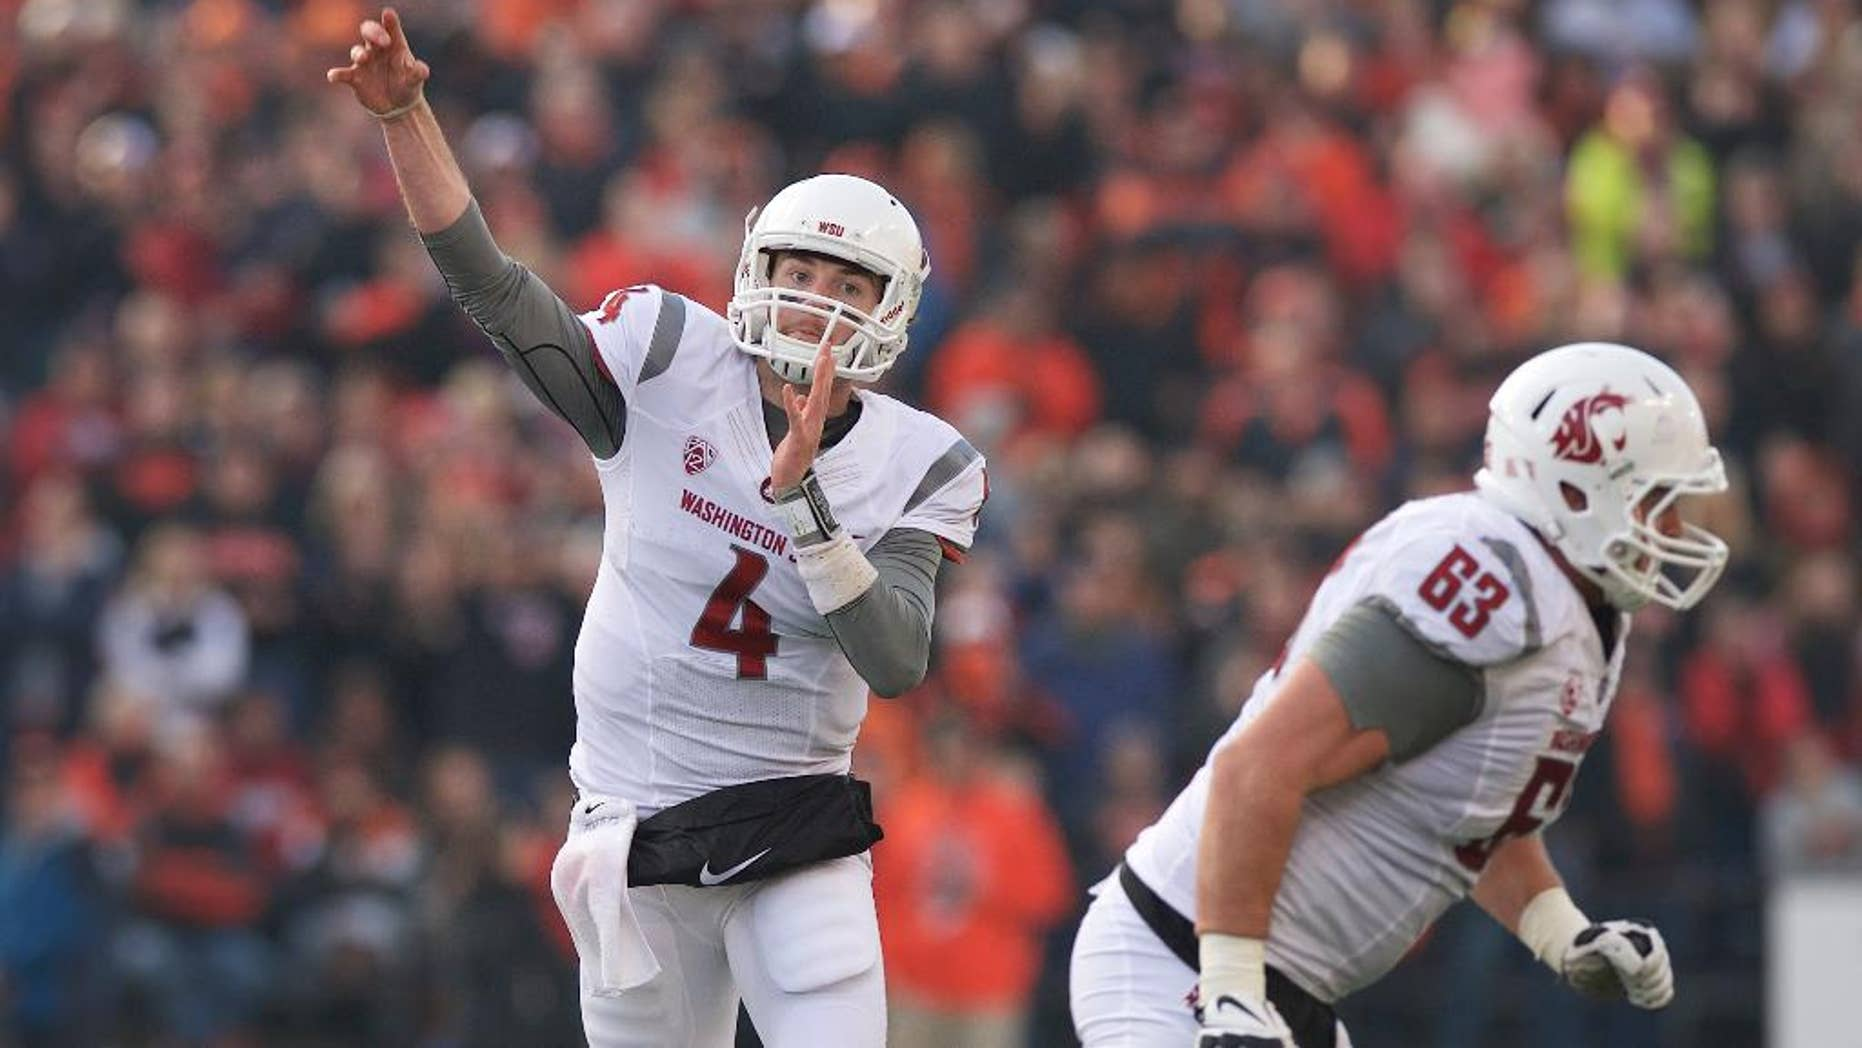 Washington State quarterback Luke Falk (4) throws a pass during an NCAA college football game against Oregon State in Corvallis, Ore., Saturday, Nov. 8, 2014. The Cougars beat the Beavers 39-32. (AP Photo/Troy Wayrynen)